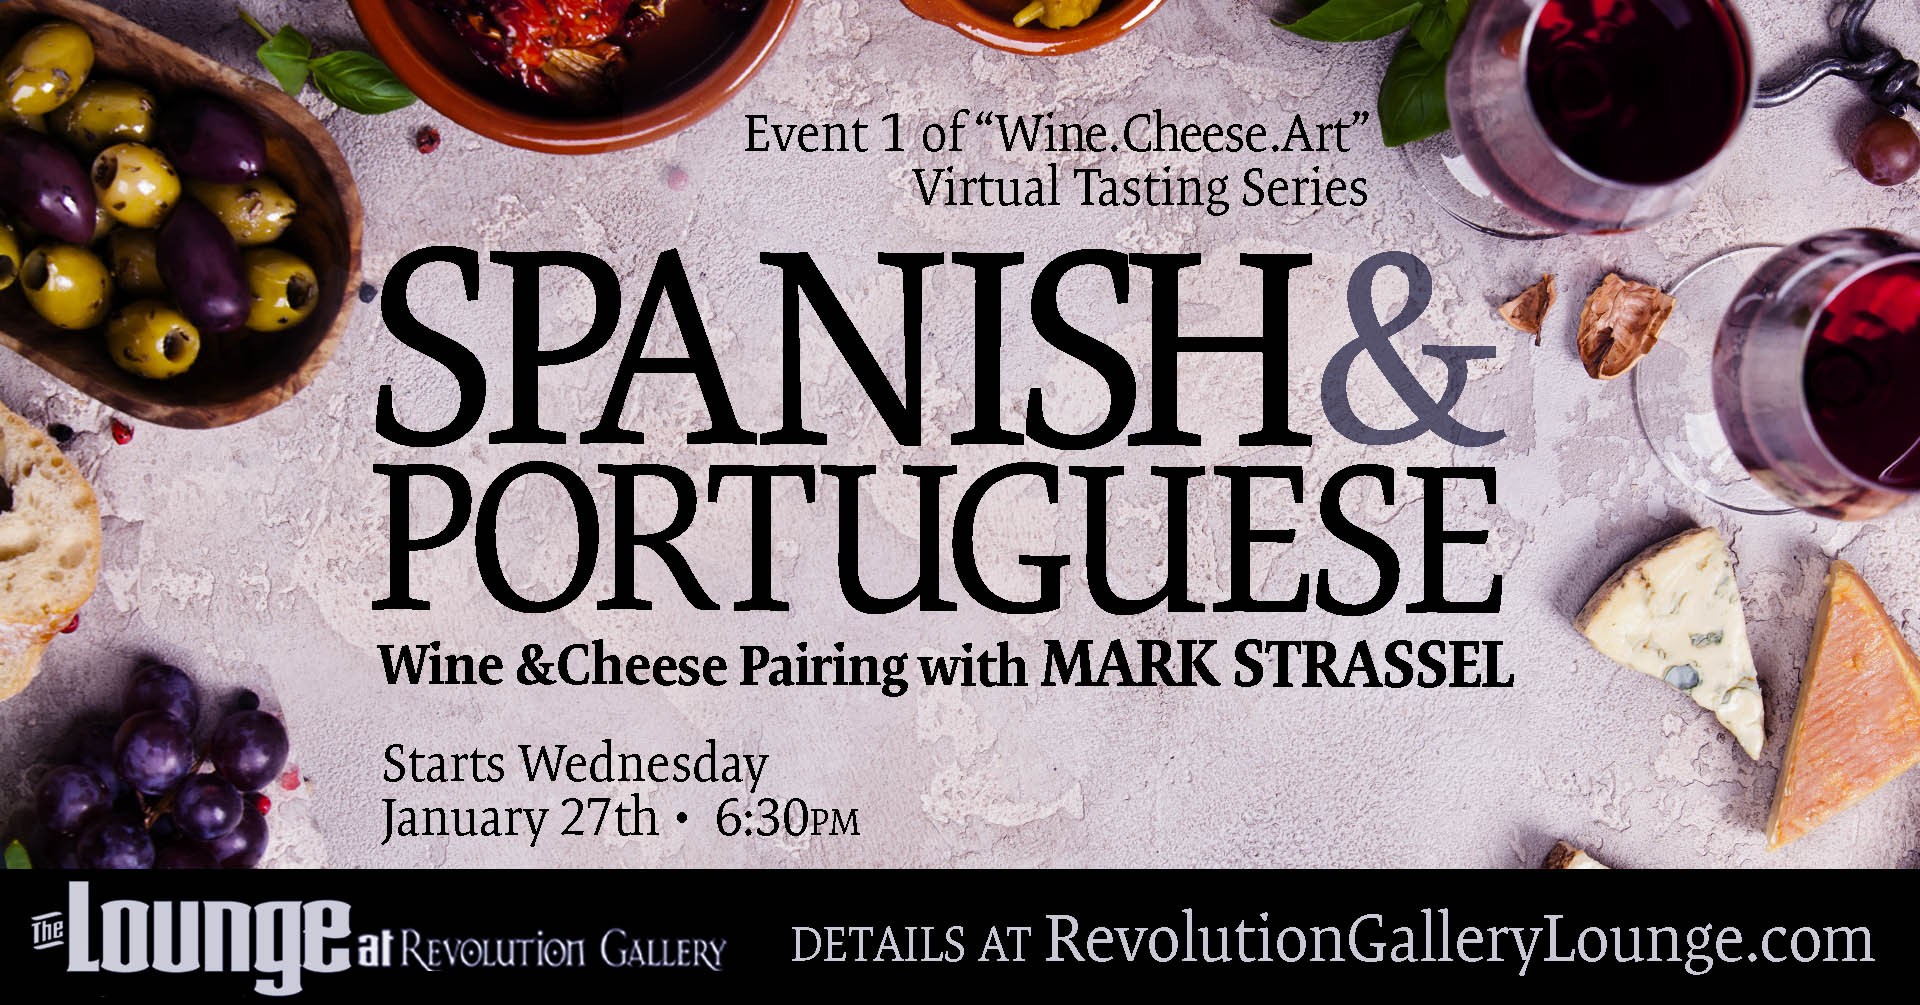 LAST WEEK! WEDNESDAY, JANUARY 27th - wines and cheese may still be ordered at the gallery for pickup next week. Click image for details!